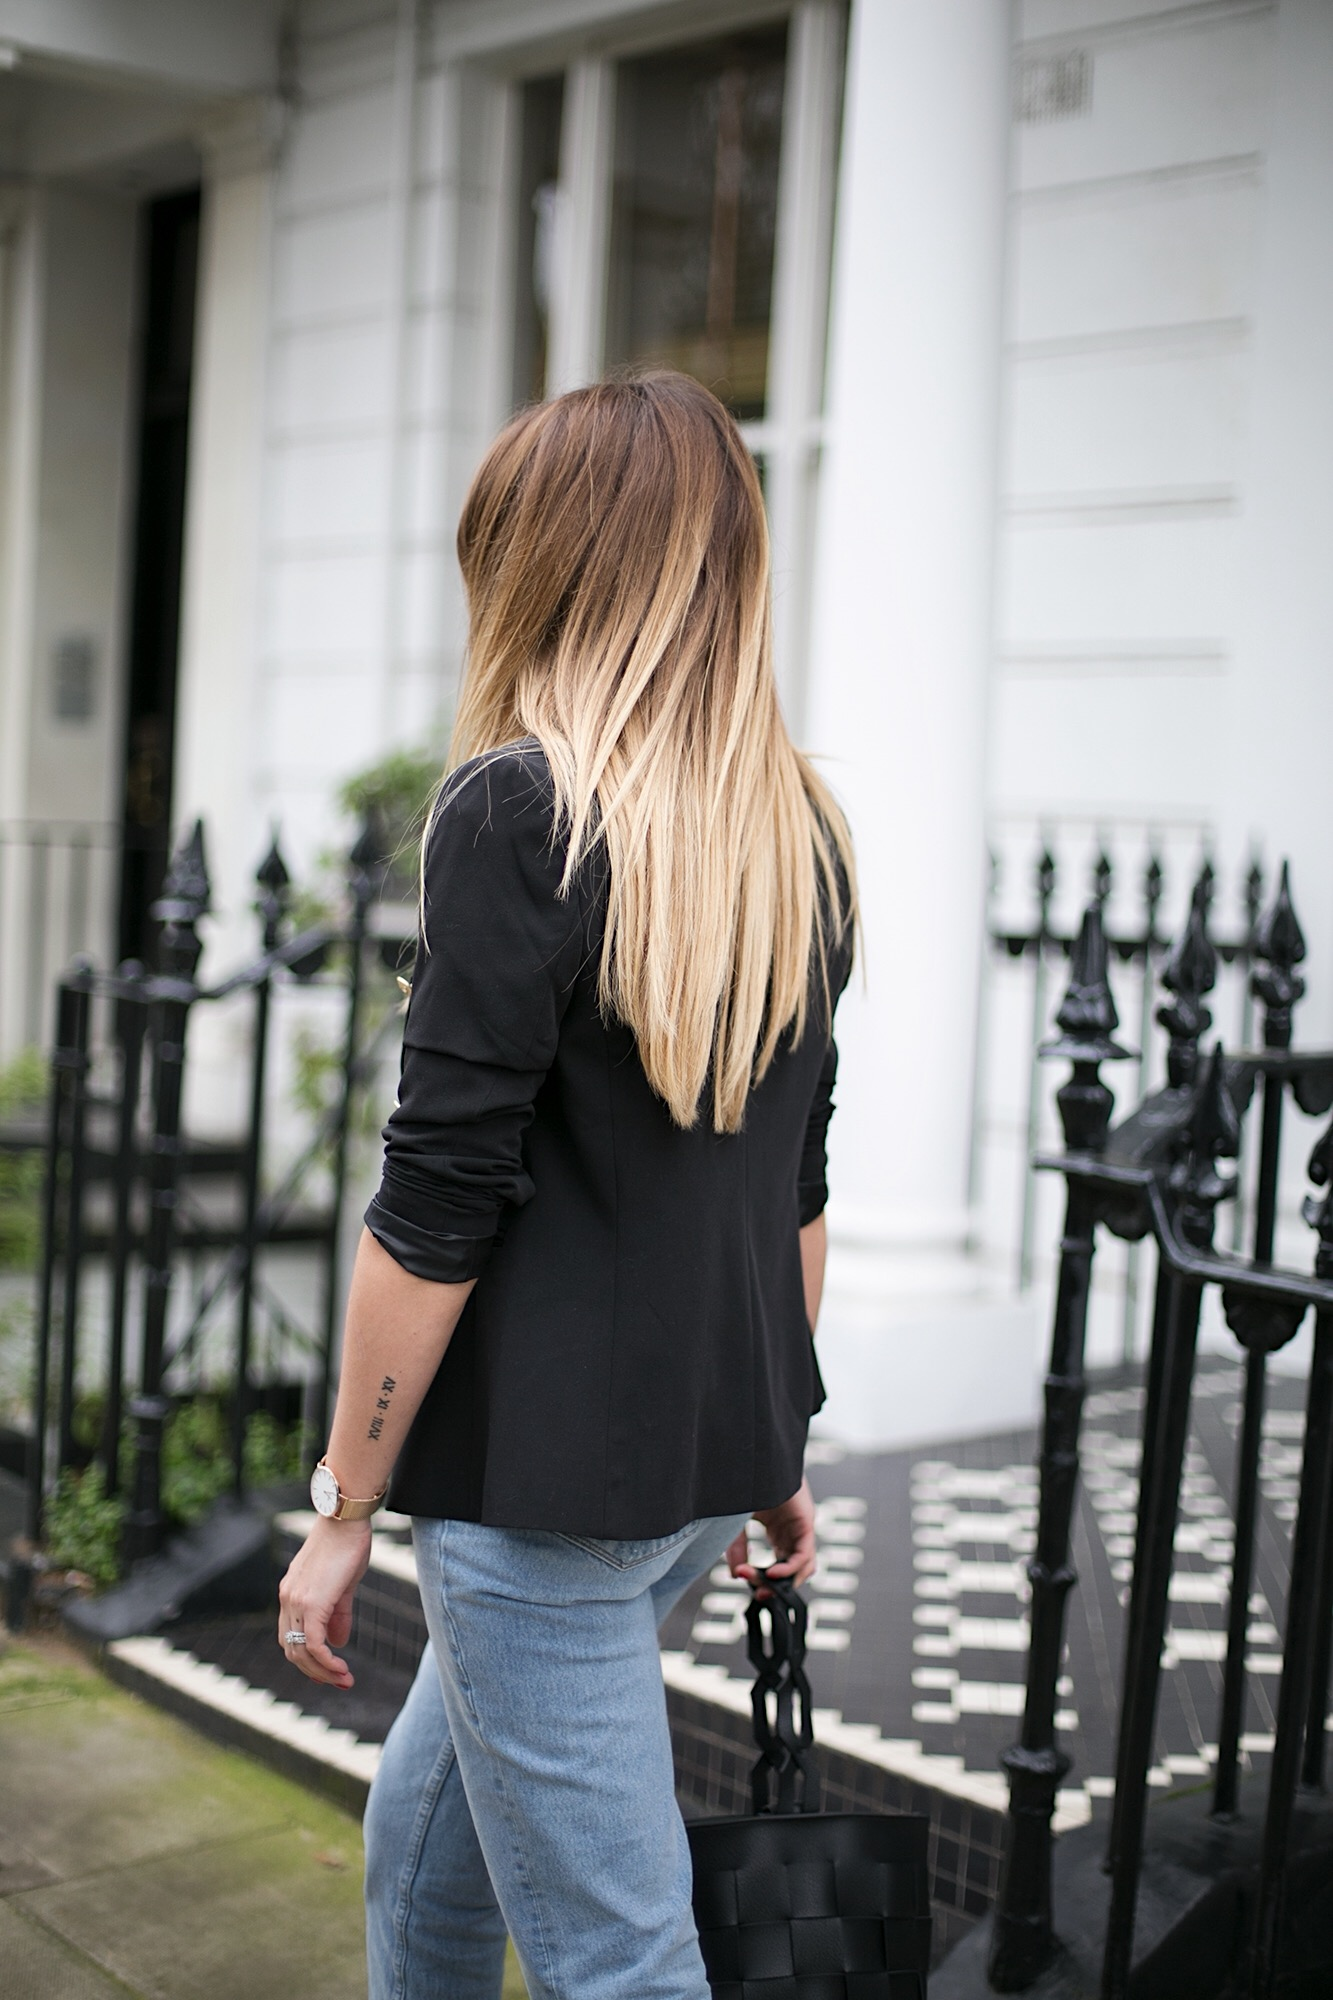 long blonde balayage hair, black blazer, rose gold watch, tiny Roman numerals arm tattoo, bleach wash jeans